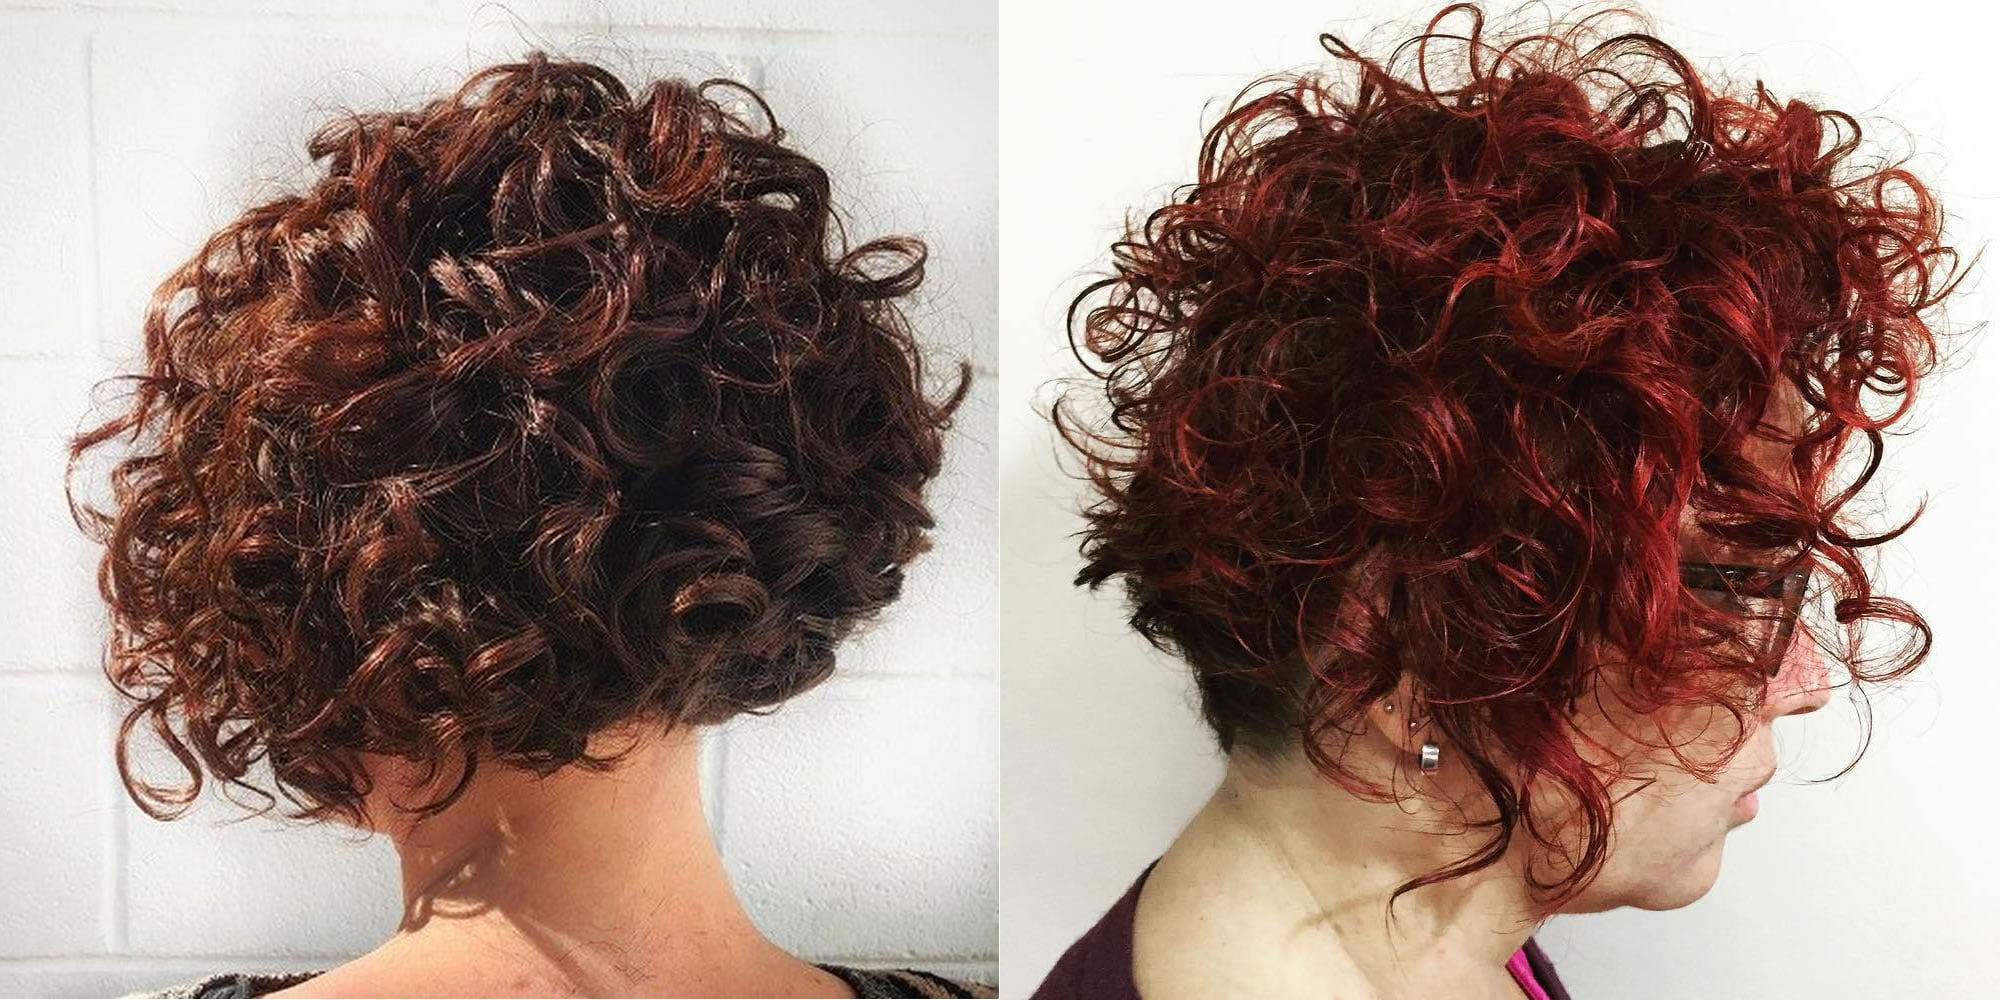 Medium hairstyles 2019 – Latest curly & wavy haircuts for ... - photo #15